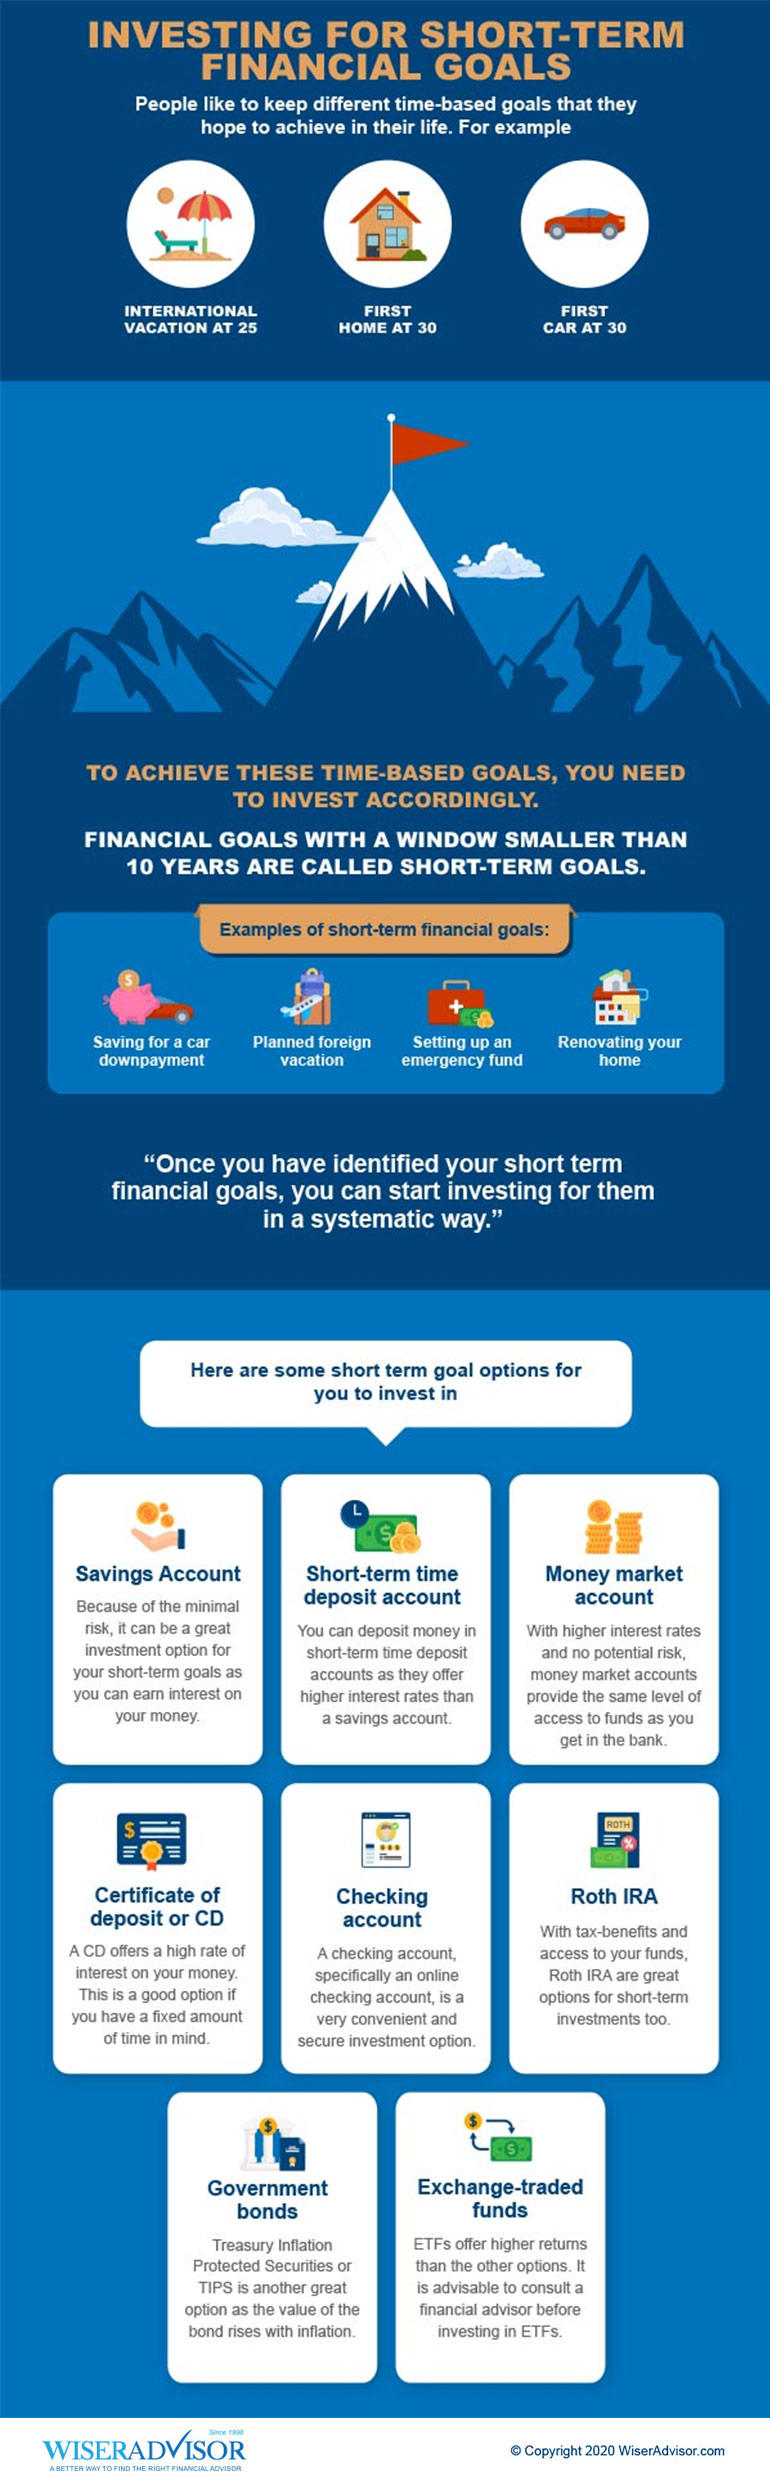 Investing for Short-Term Financial Goals